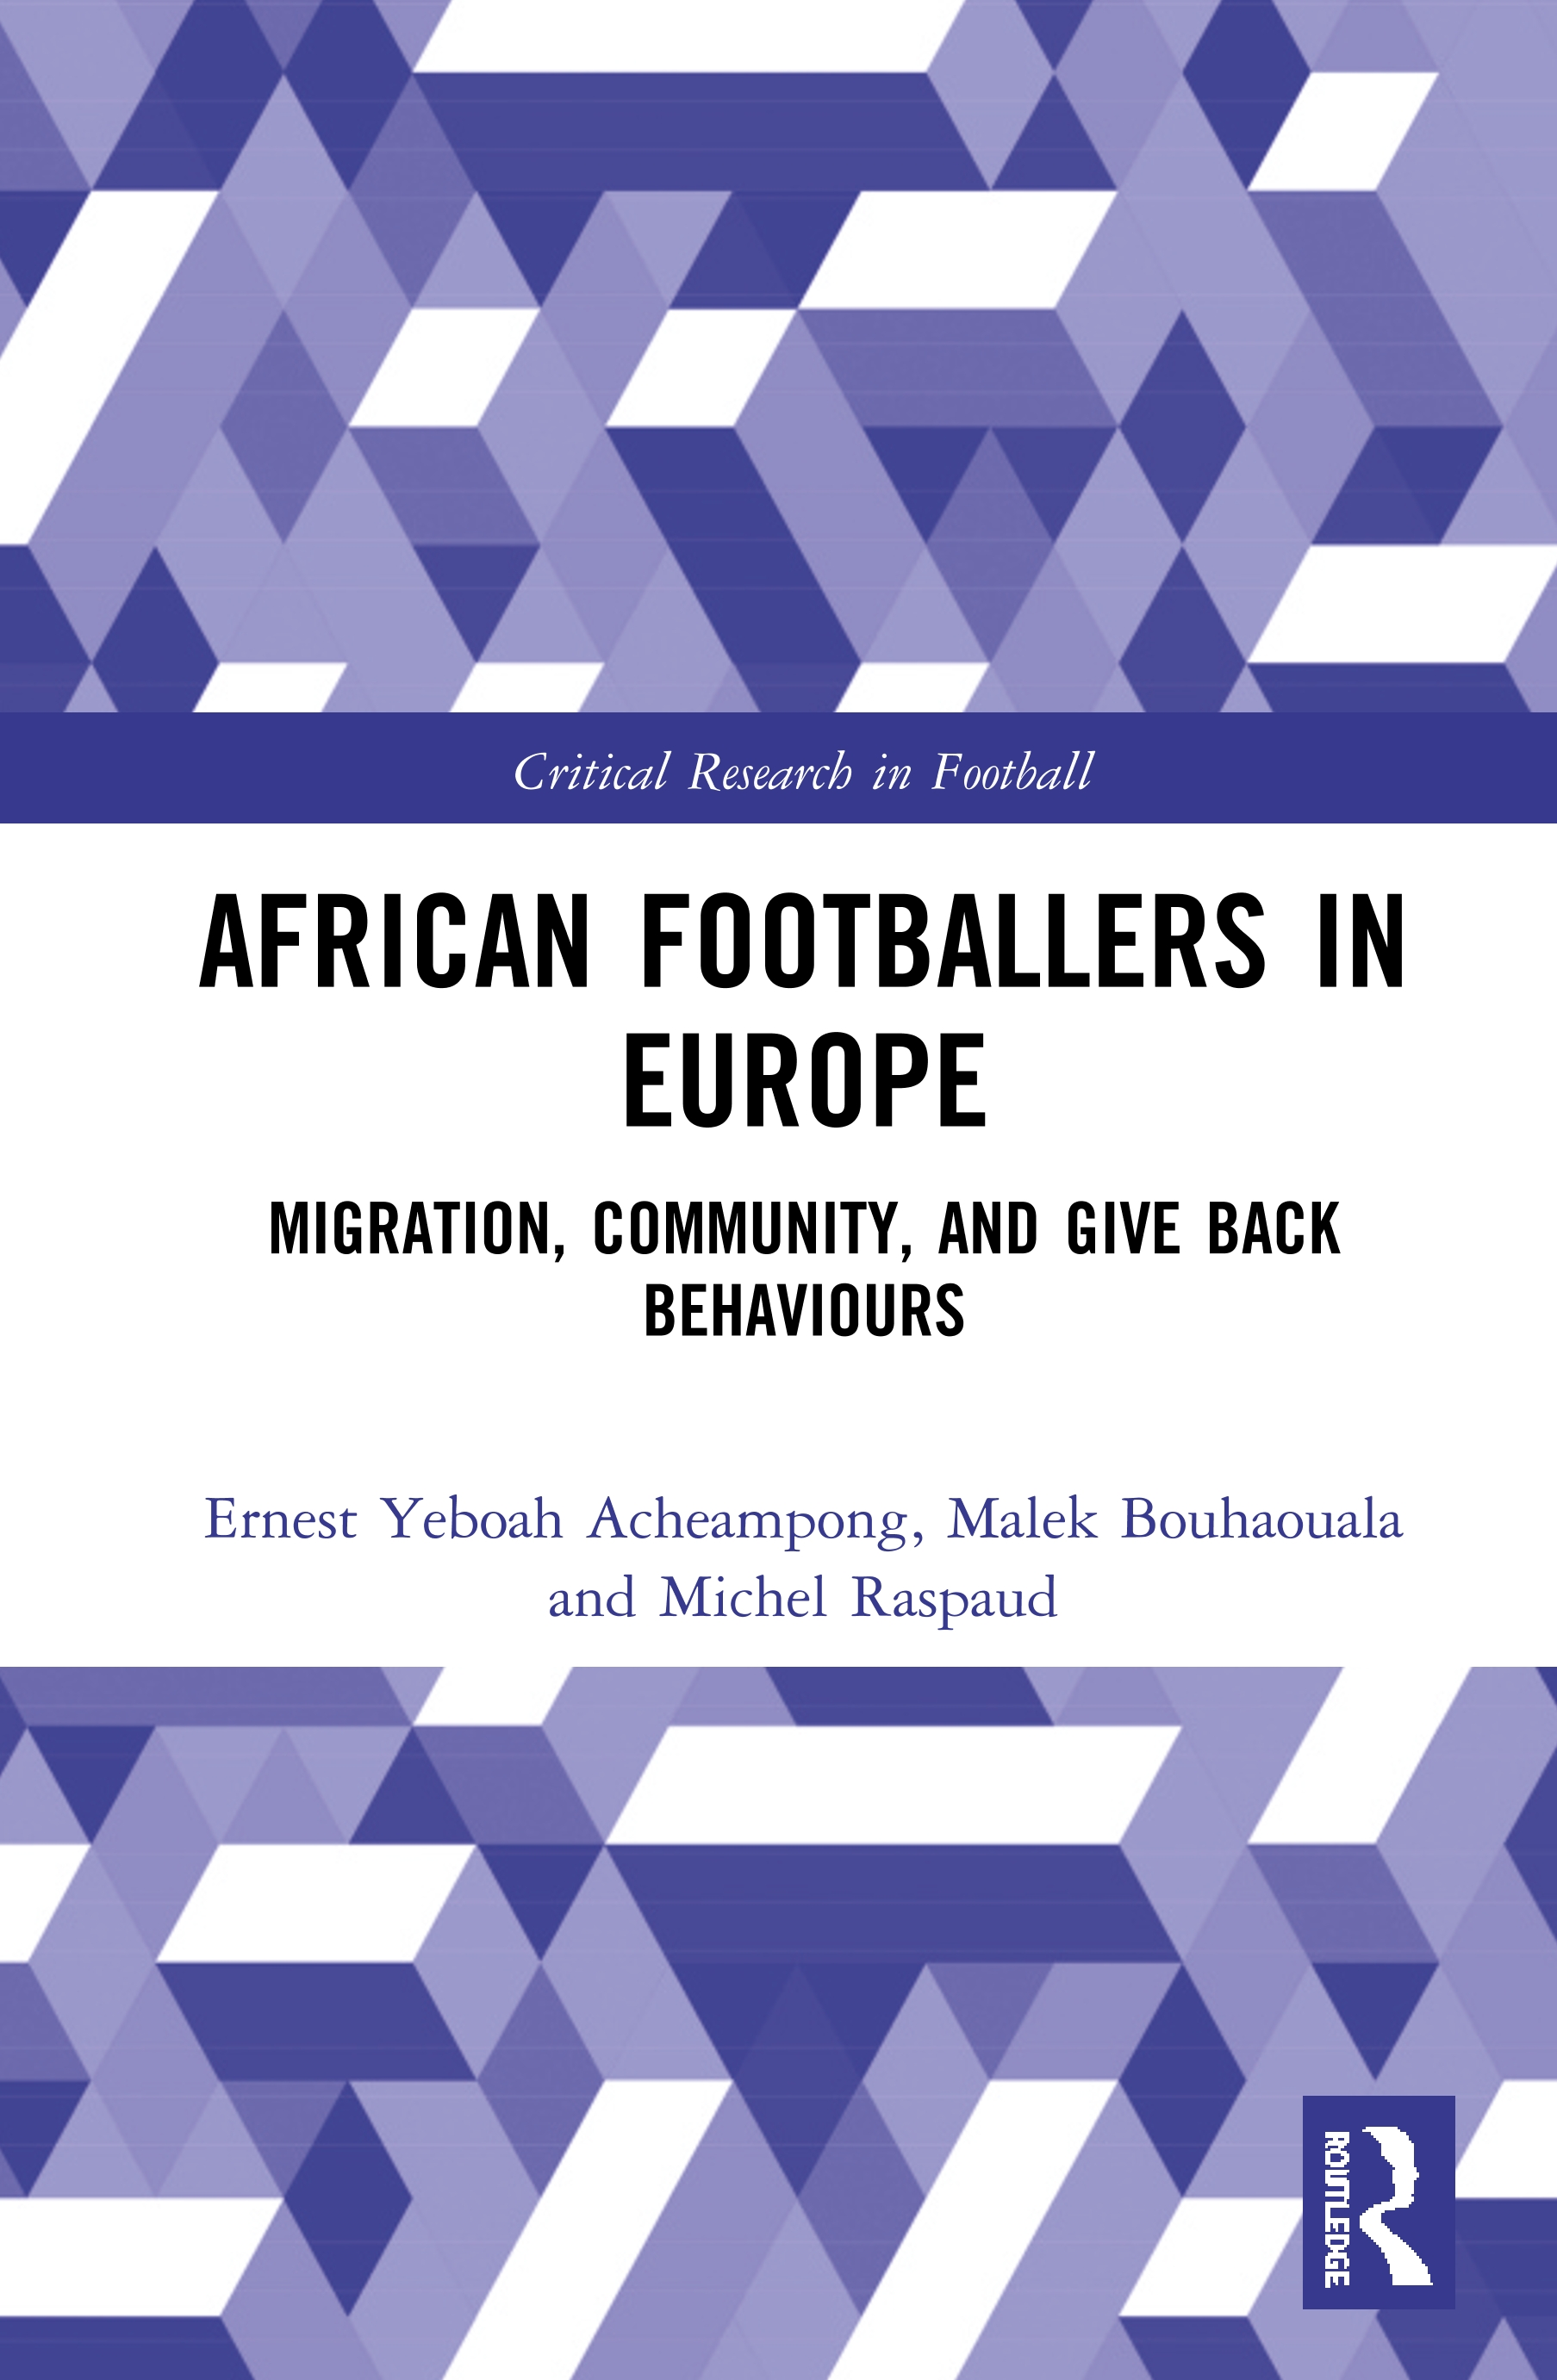 African Footballers in Europe: Migration, Community, and Give Back Behaviours book cover